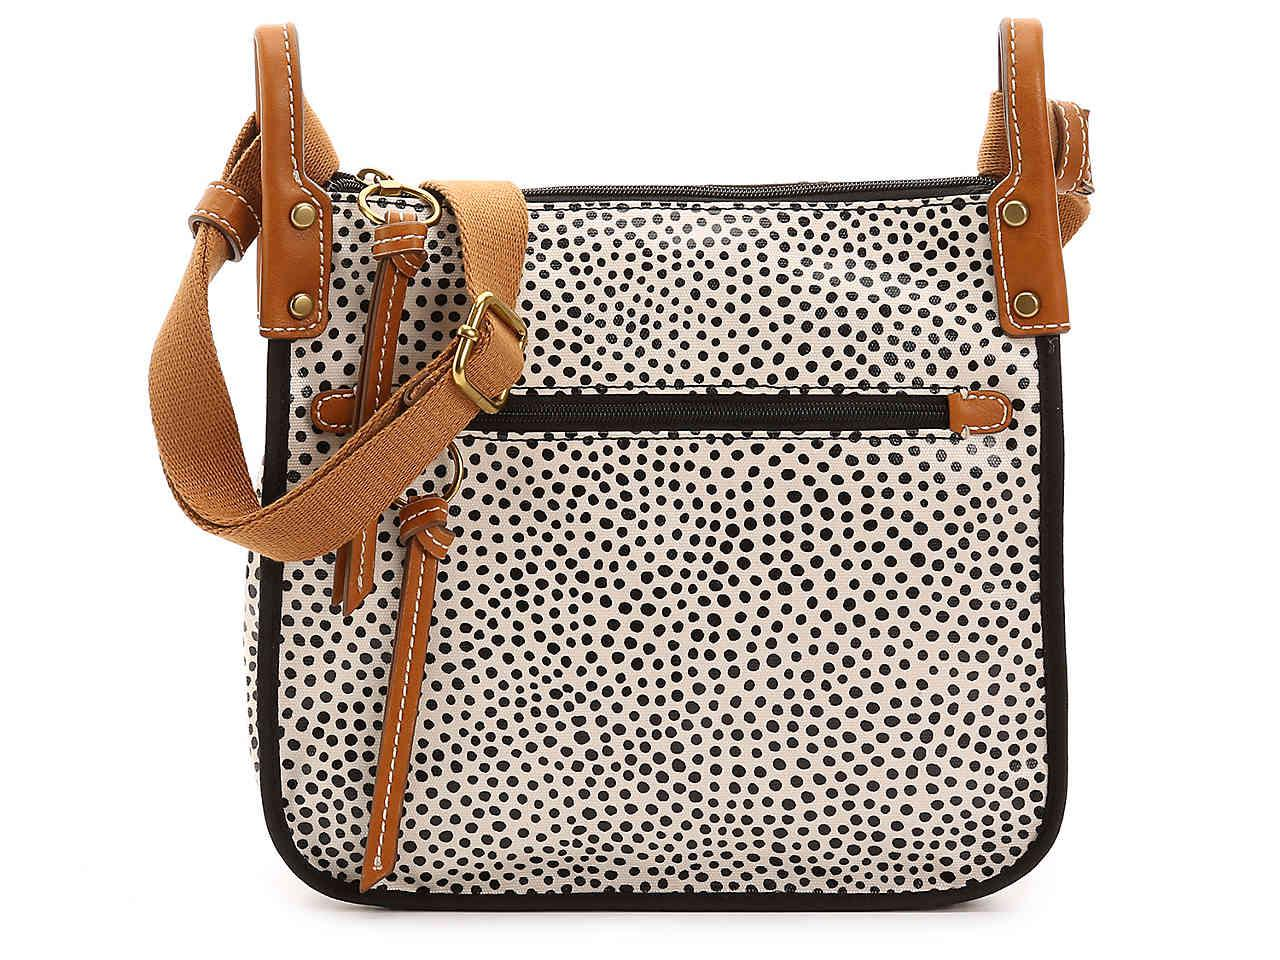 Lyst - Fossil Keyper Crossbody Bag in White 8e31dcec28